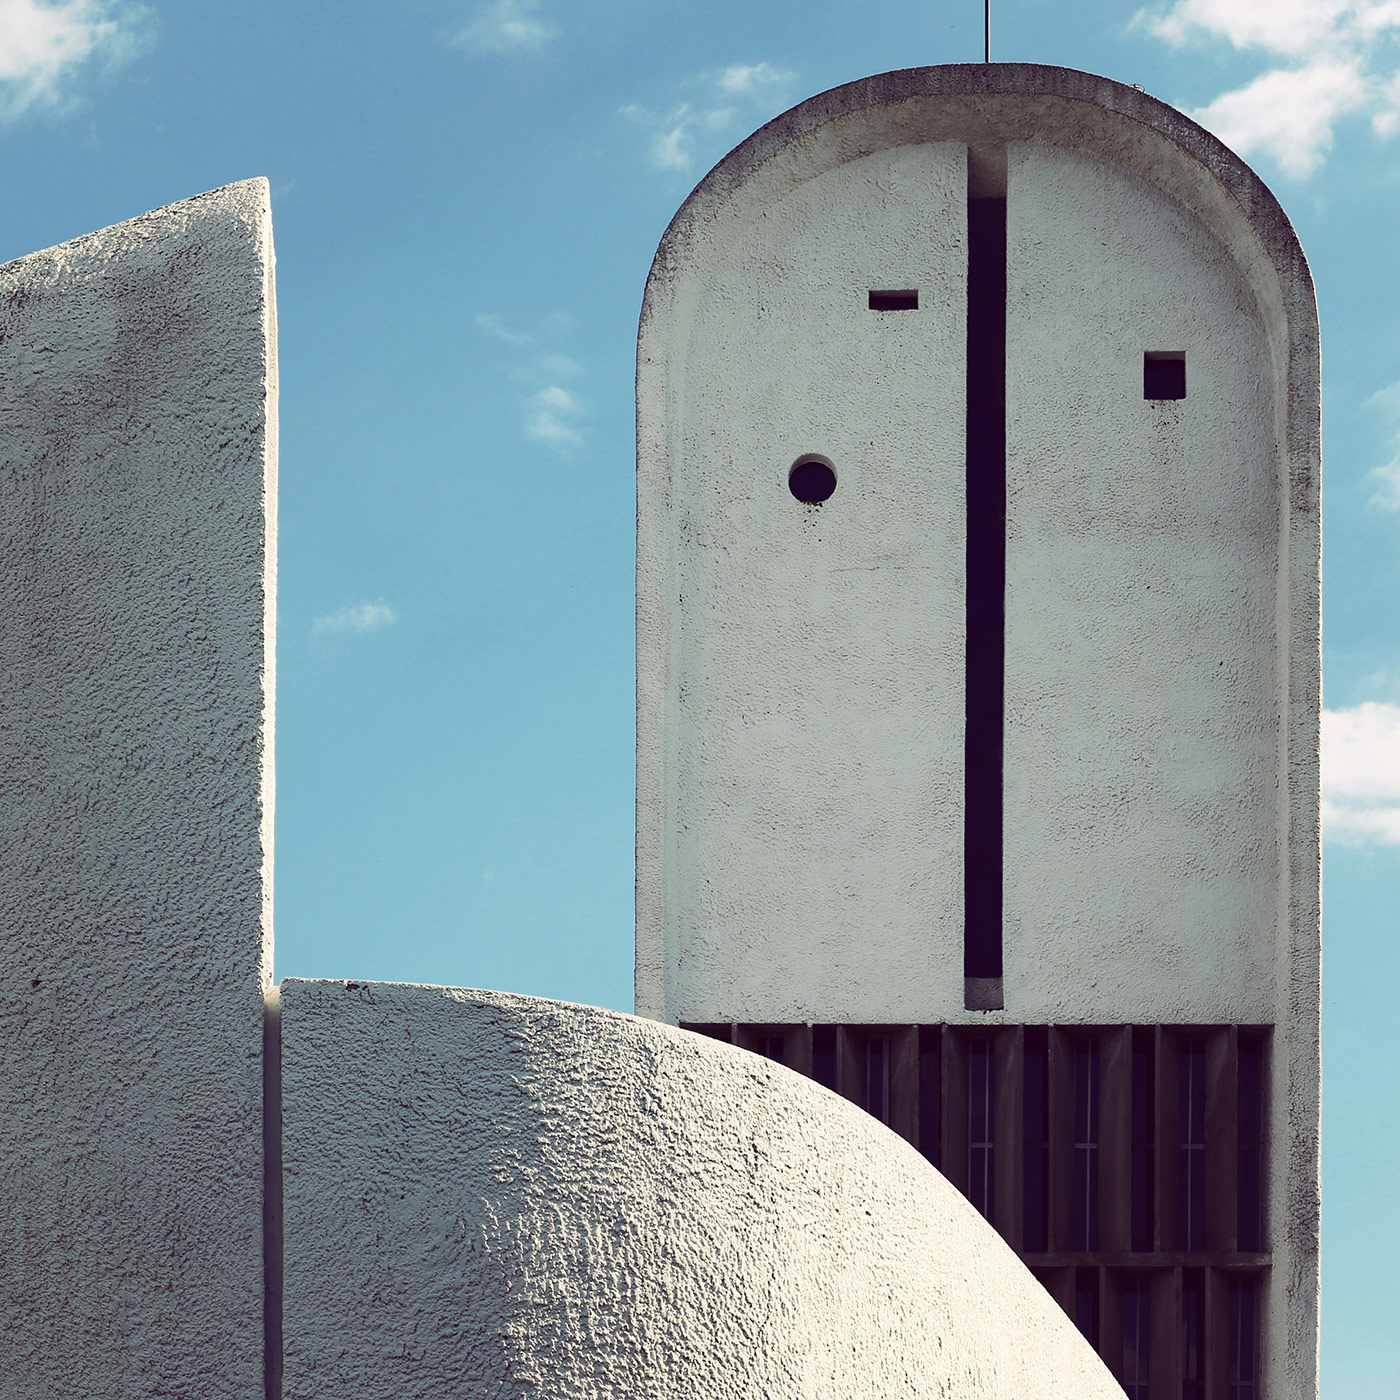 Chapelle Notre-Dame-du-Haut de Ronchamp <br />Location: Ronchamp, France <br />Architect: Le Corbusier